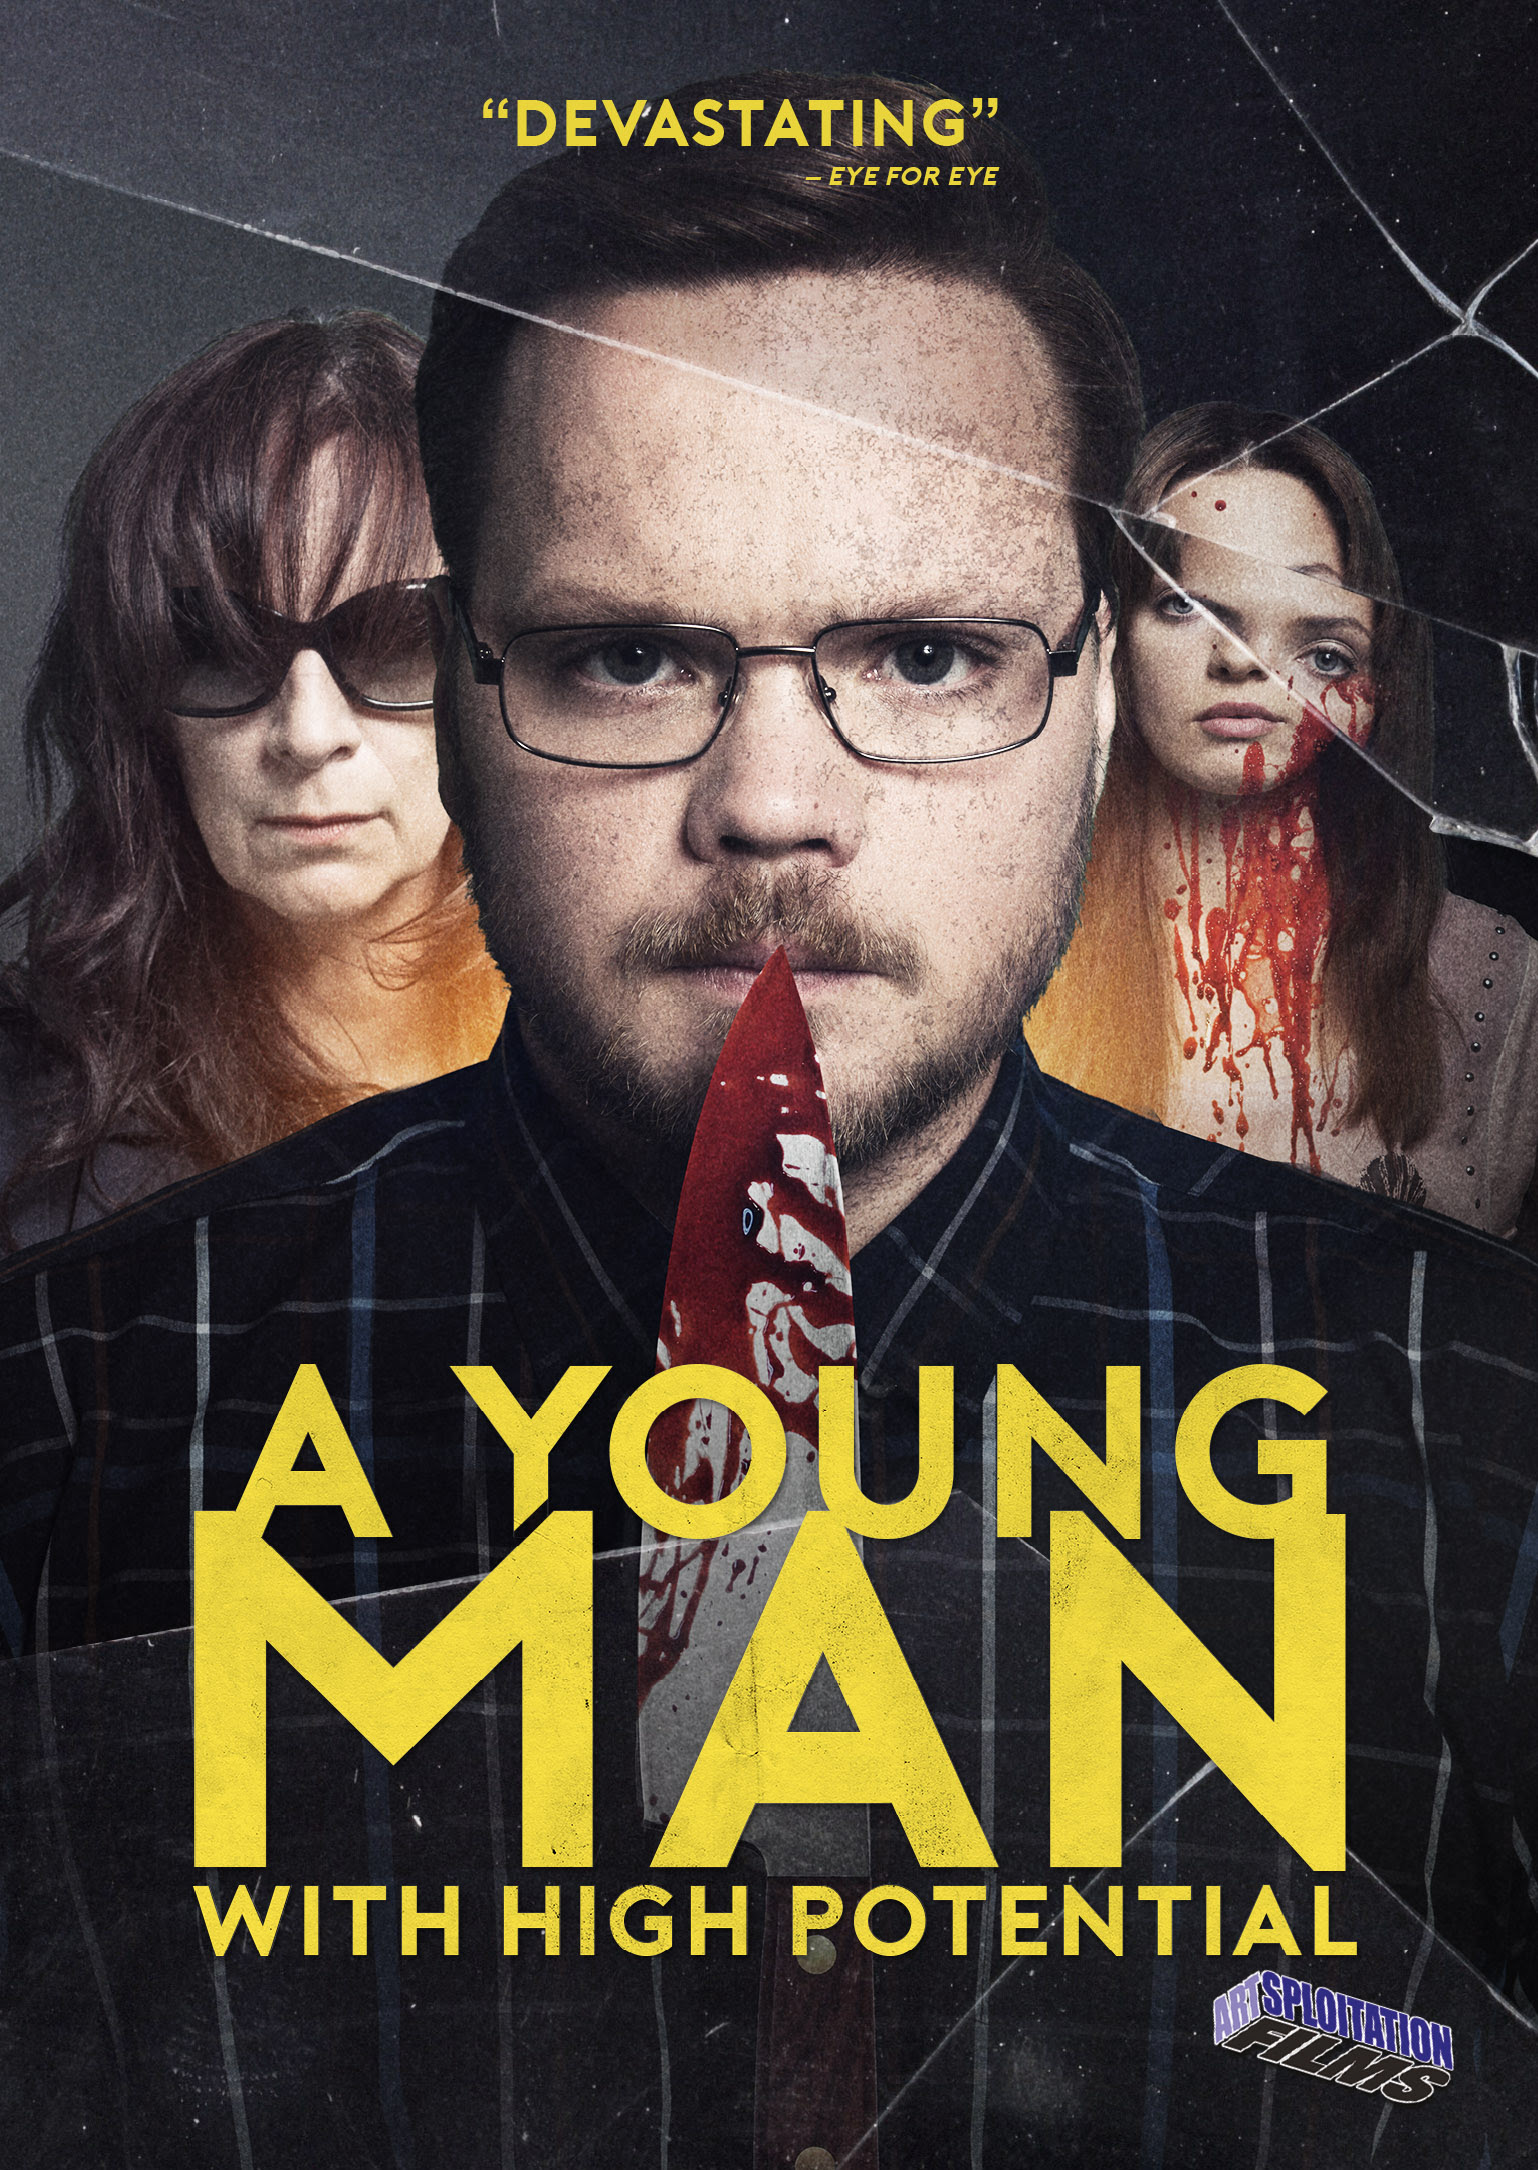 Film Review: A YOUNG MAN WITH HIGH POTENTIAL (2019)